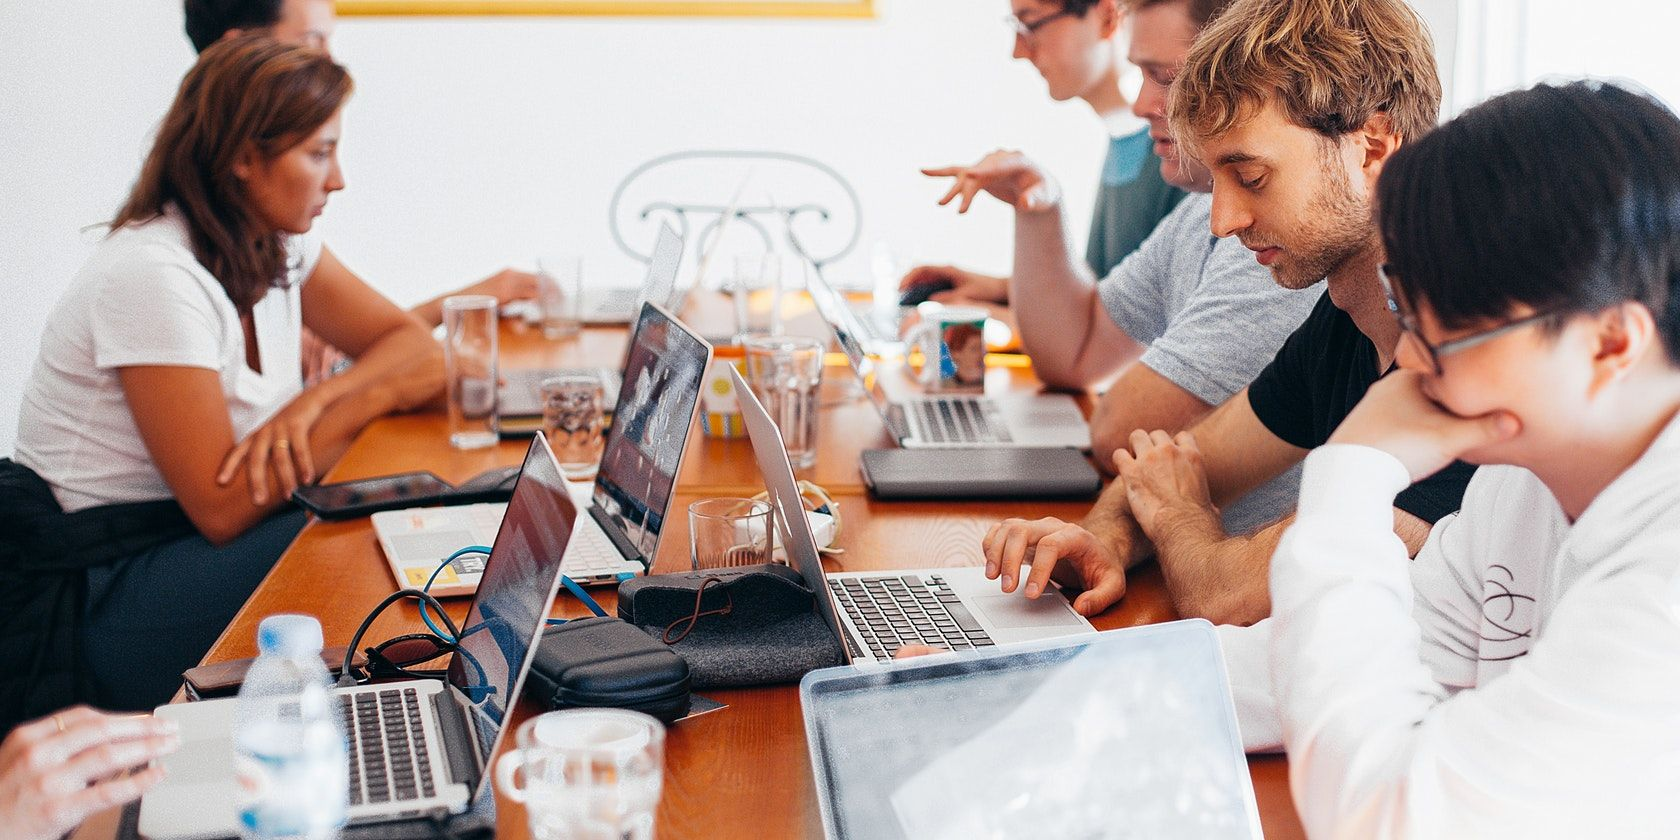 5 Types of Agile Methodologies You Can Use in Your Projects